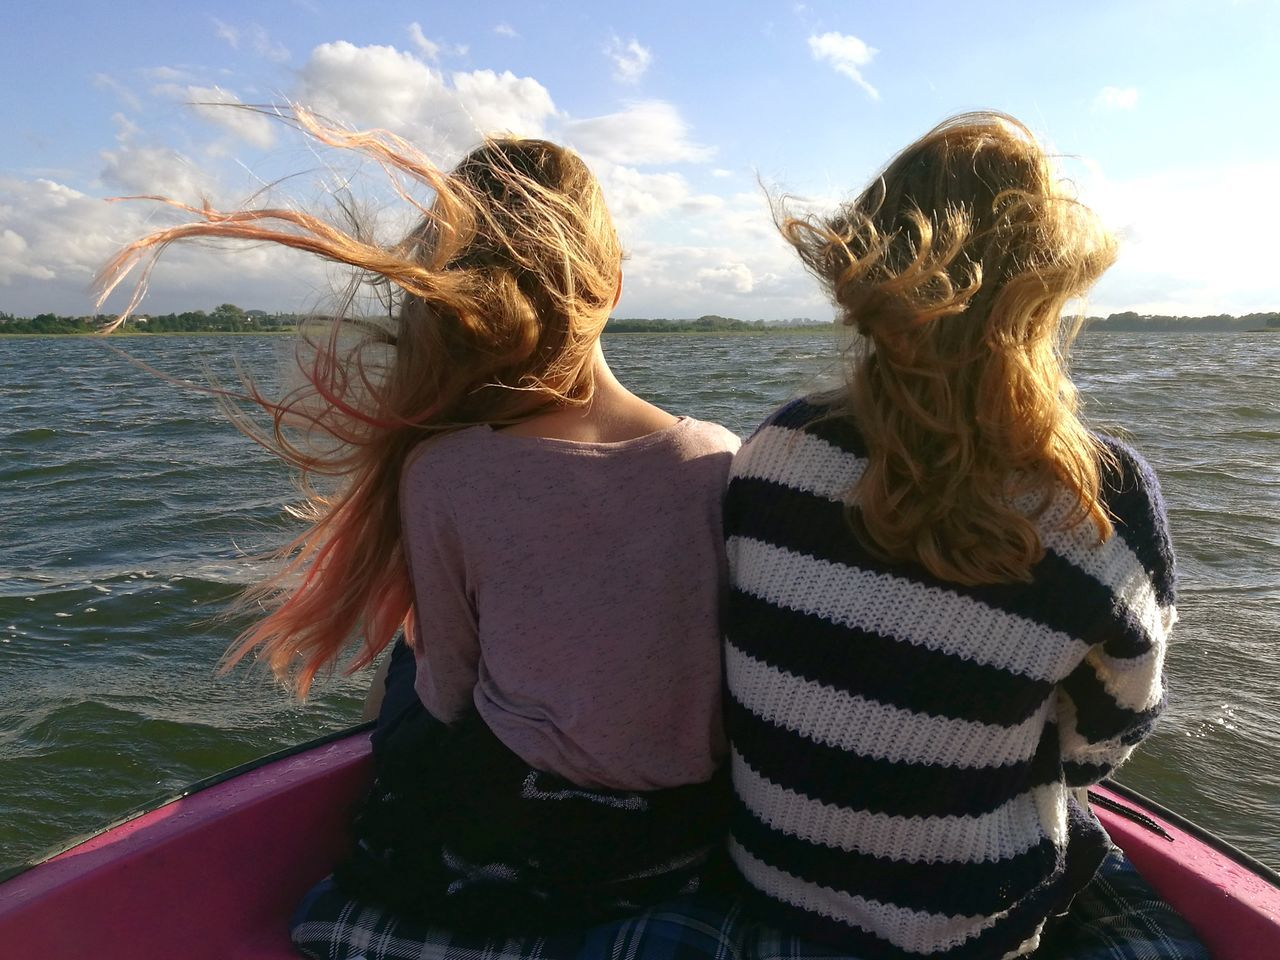 real people, rear view, leisure activity, sea, two people, togetherness, day, water, long hair, horizon over water, young women, women, lifestyles, beach, outdoors, blond hair, sky, young adult, standing, friendship, nature, people